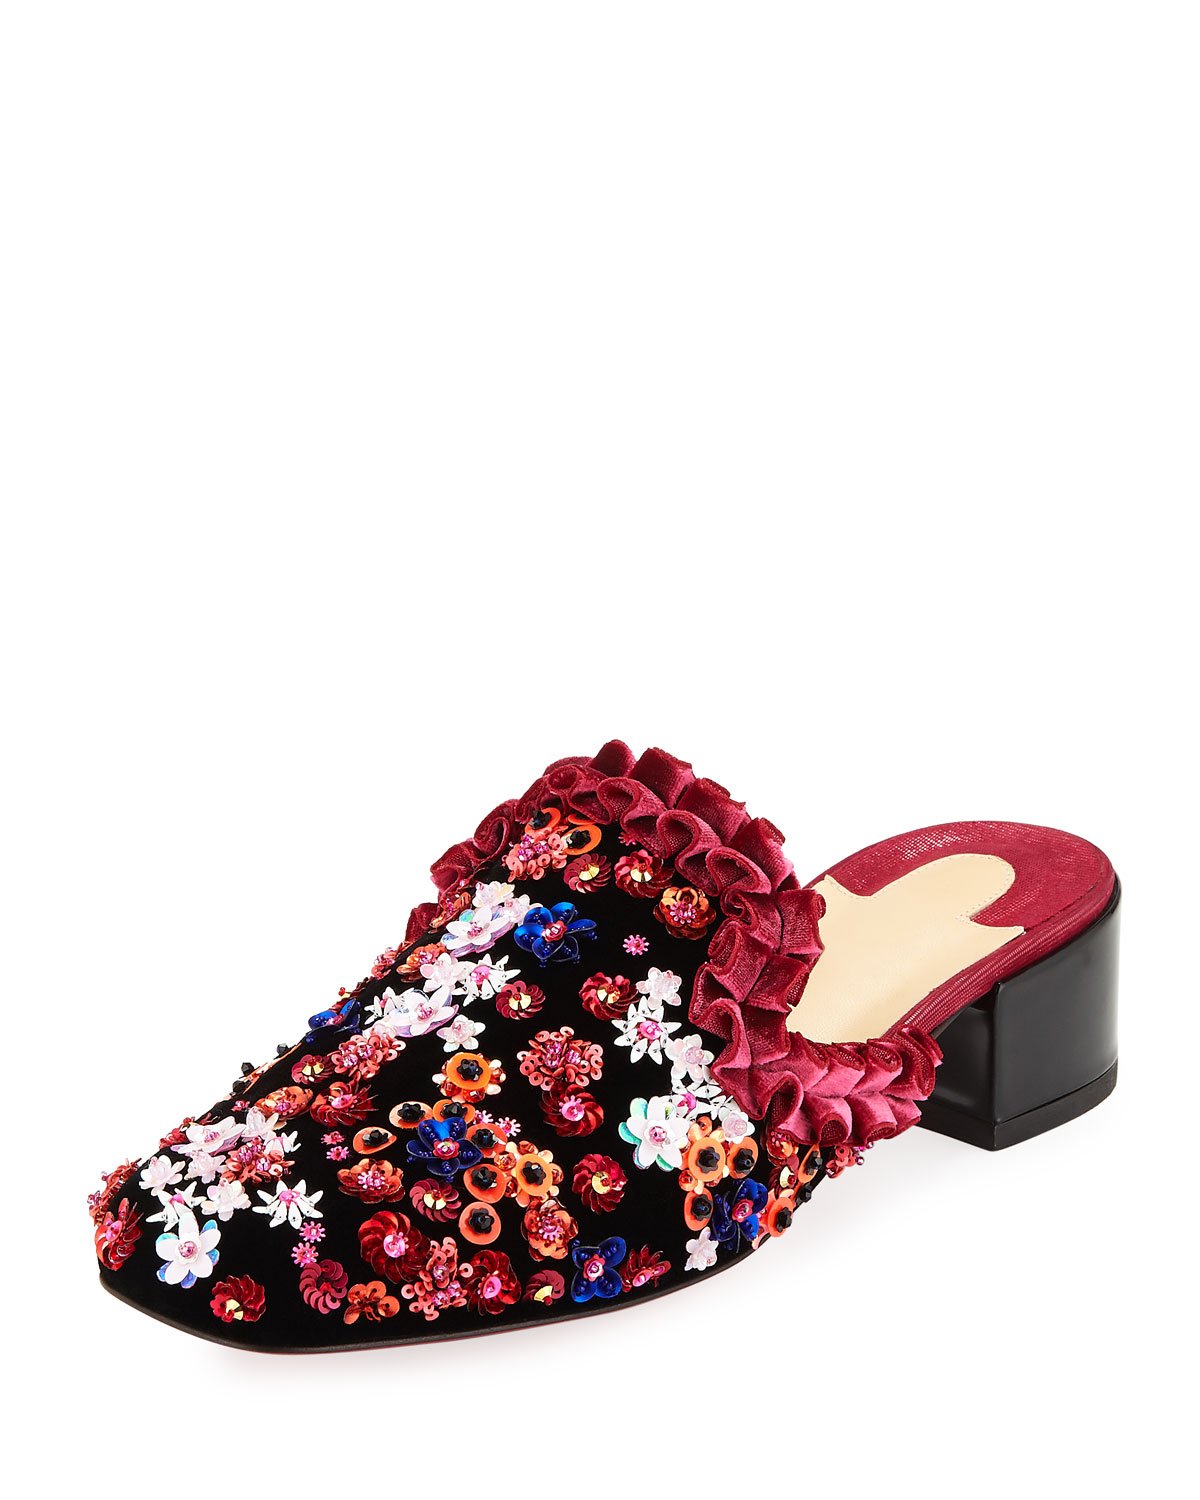 7d51d3617856 Christian Louboutin Dona Viera Embroidered Suede Red Sole Mule ...